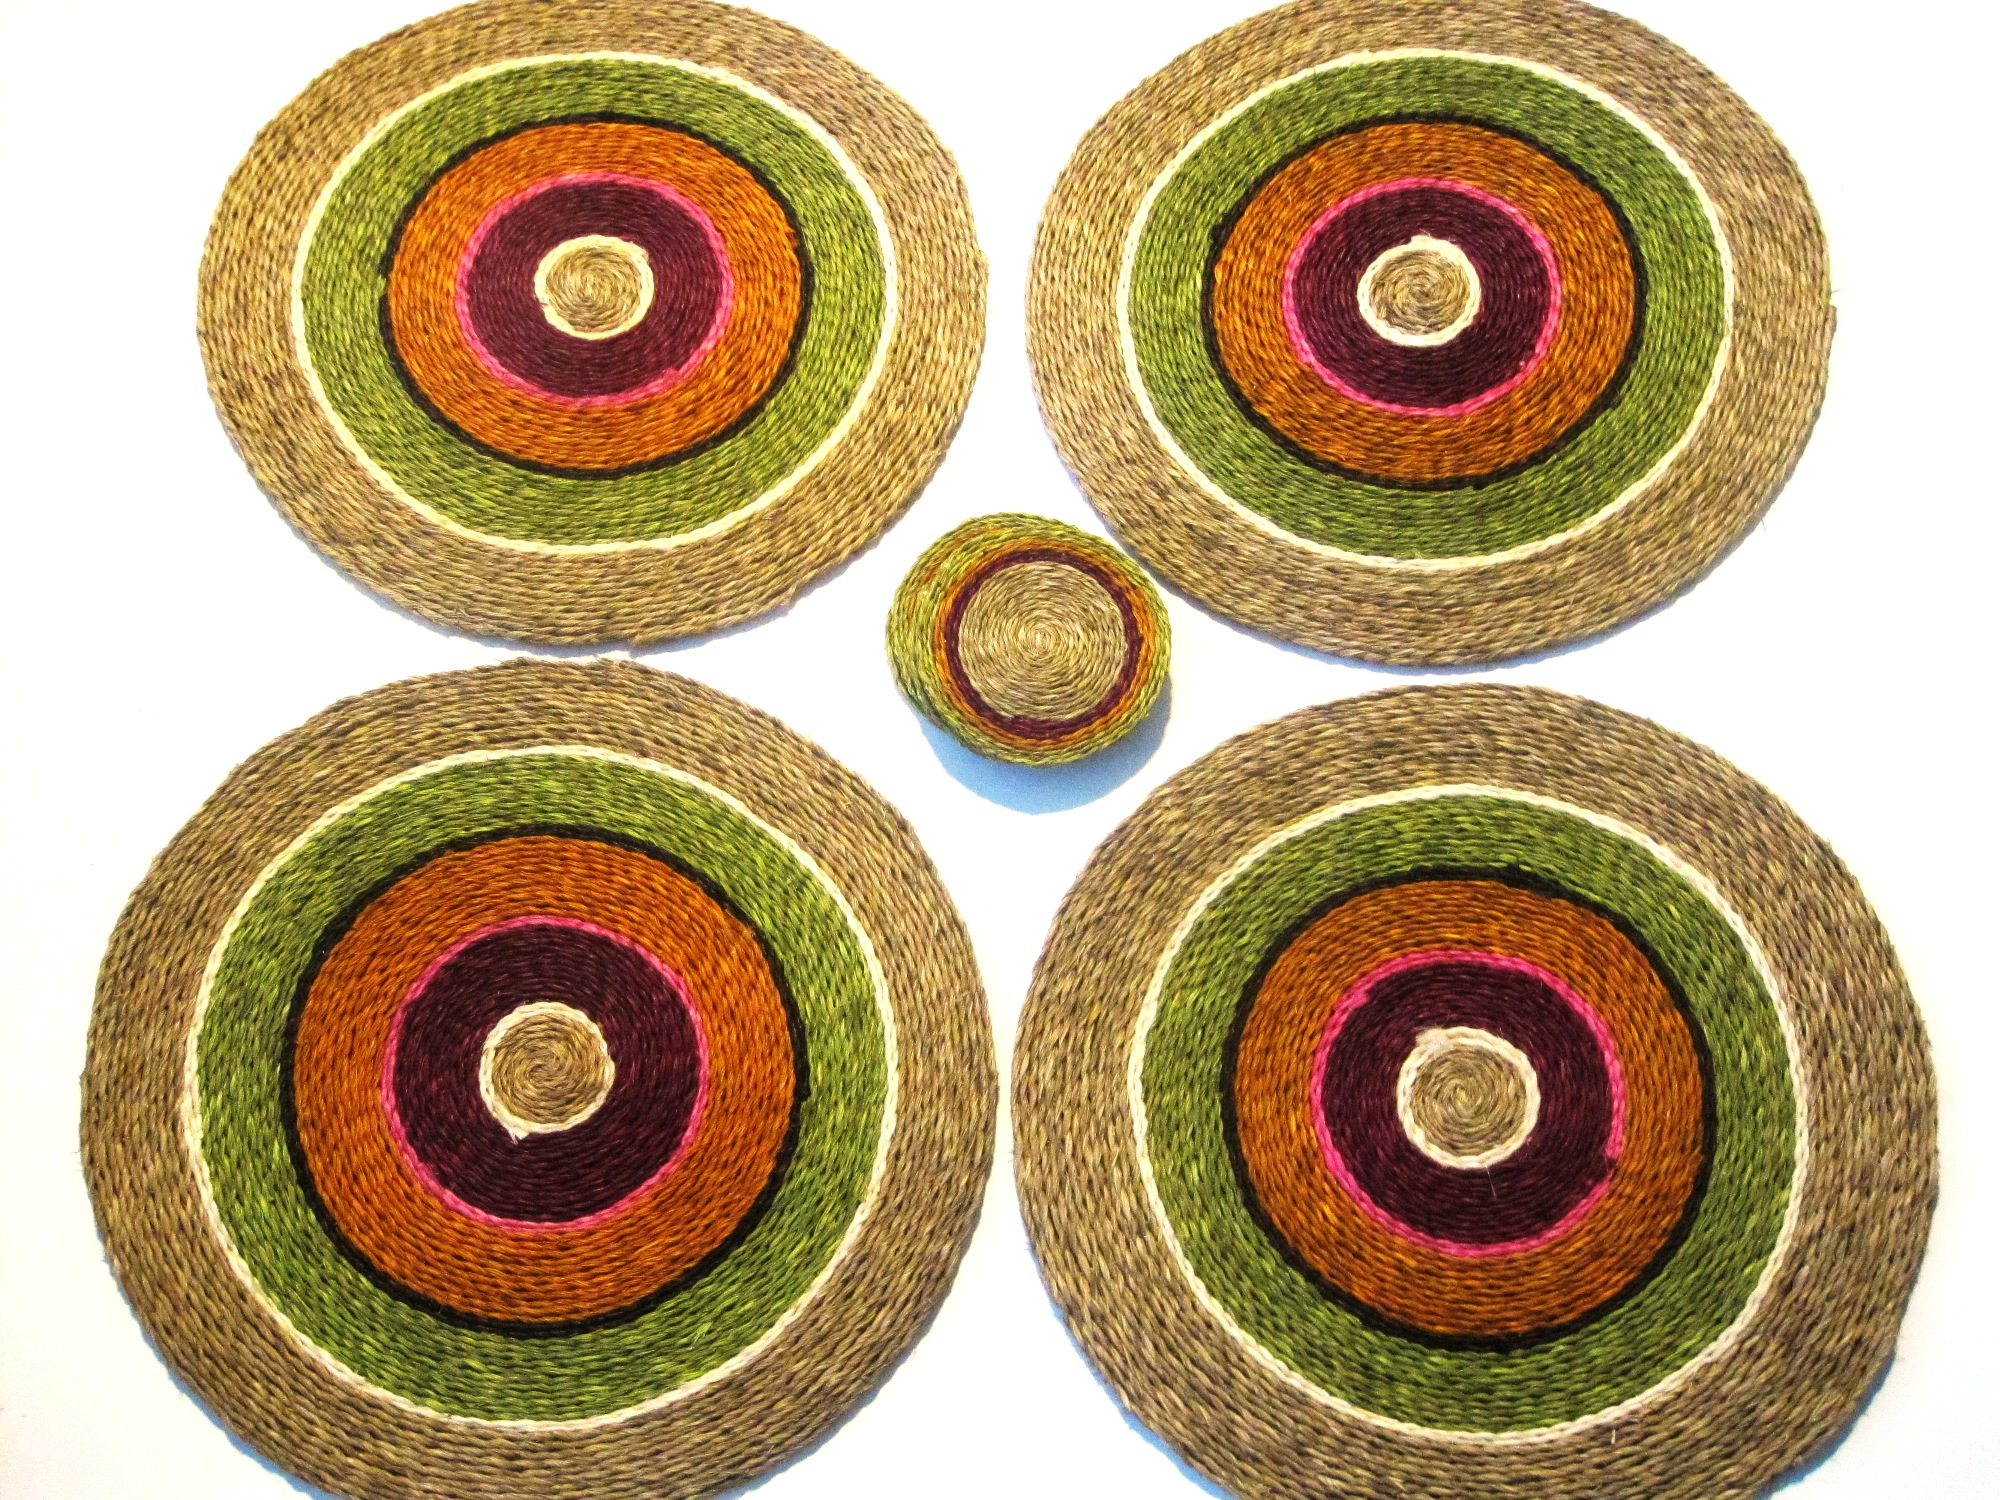 Handwoven Placemat/Coaster Sets